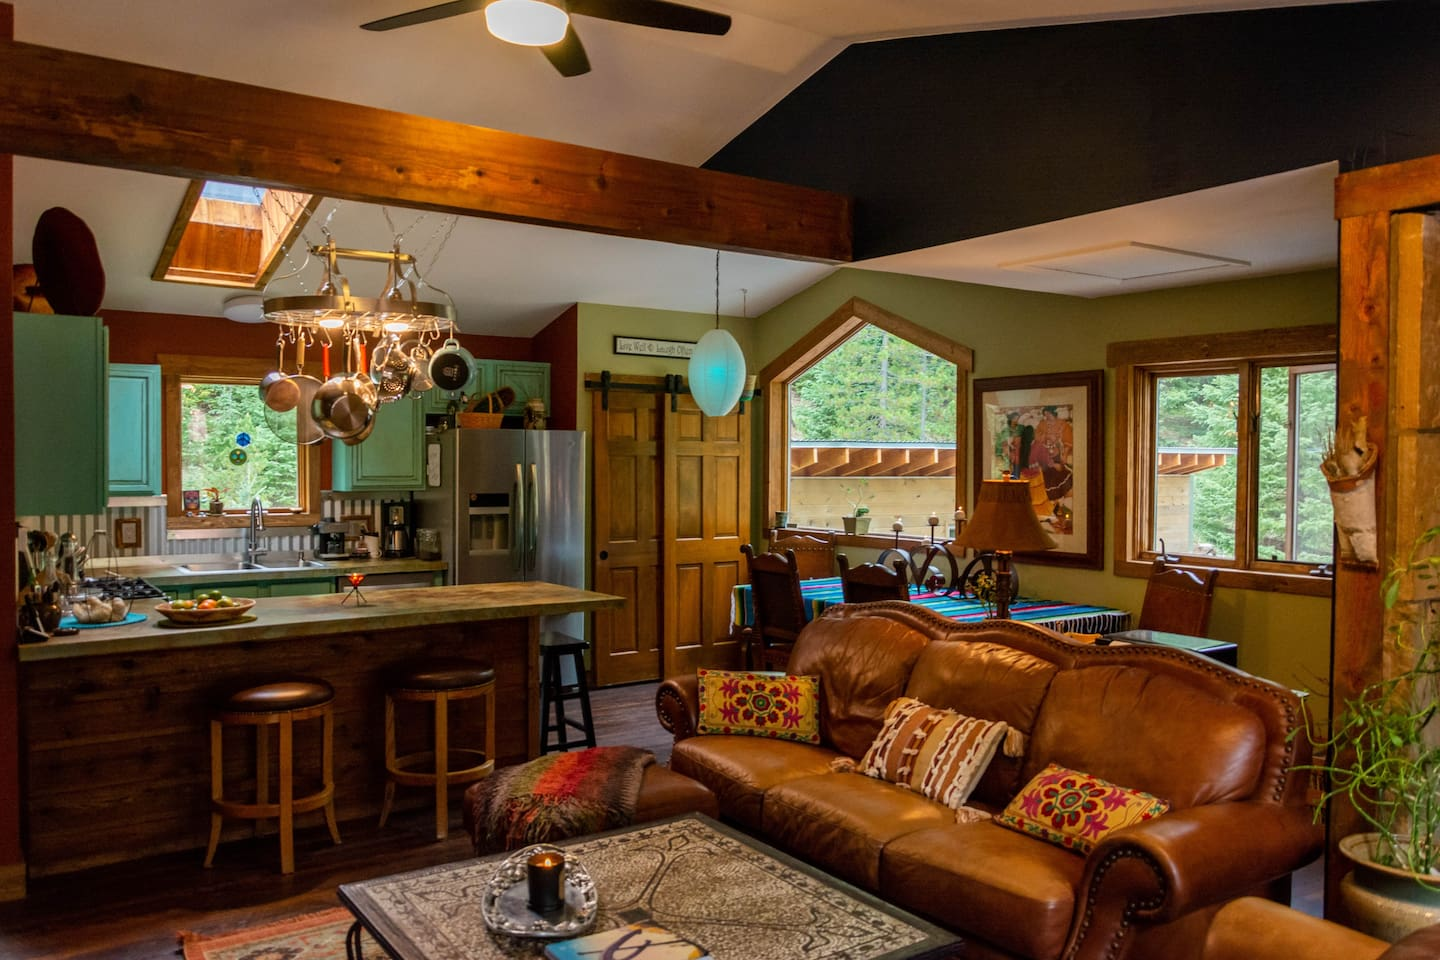 Our open floor plan makes the kitchen, dining and living room a great gathering space for friends and family to enjoy cooking meals, watching tv, playing board games or listening to music, perhaps.